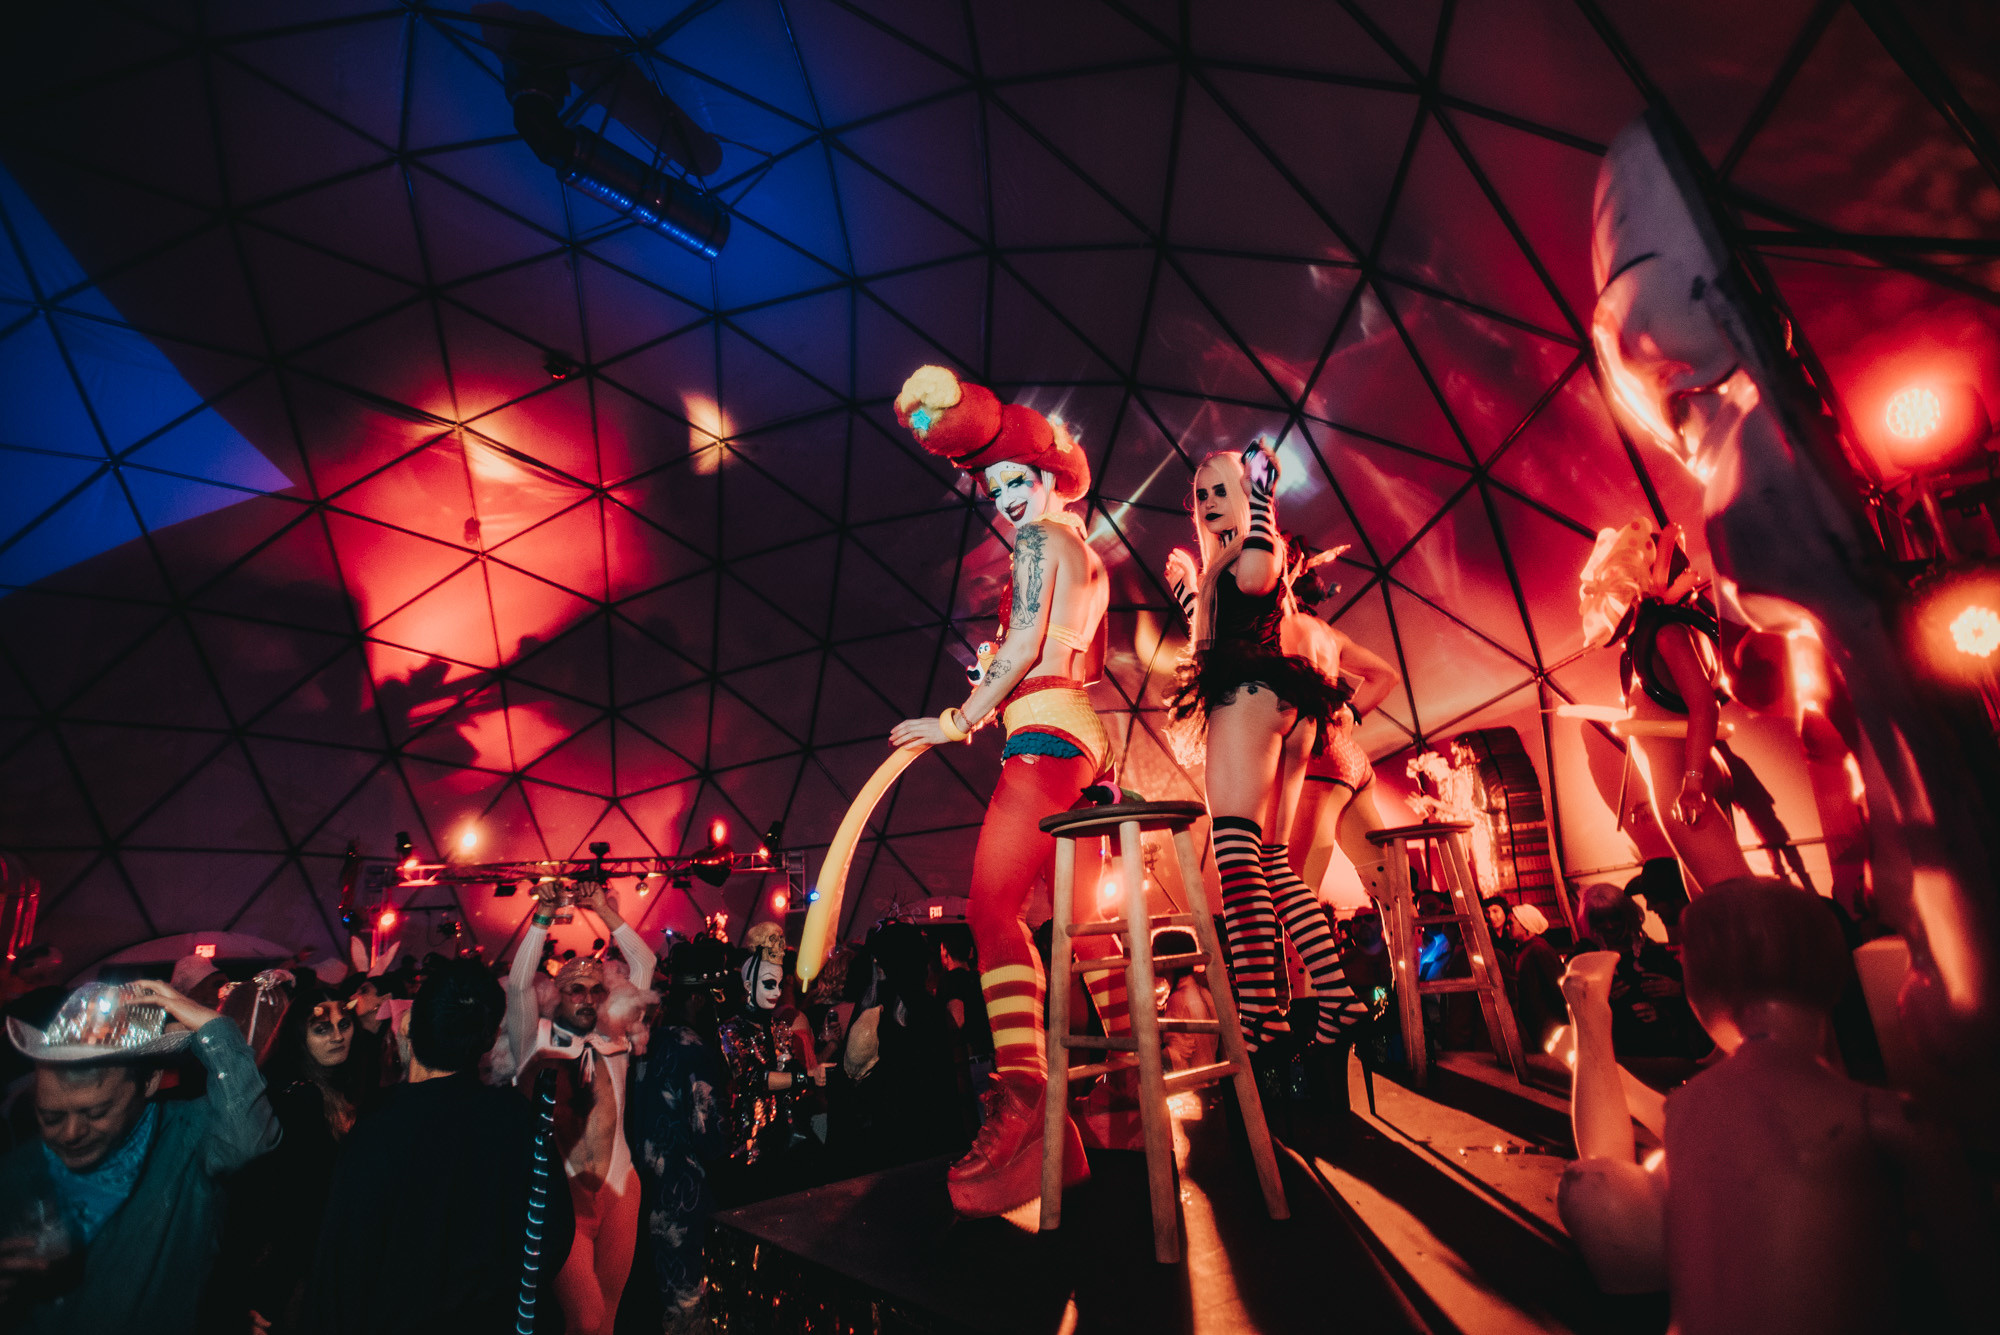 Moma Ps1 Halloween 2020 Halloween Ball with Susanne Bartsch: Valley of the Dolls | MoMA